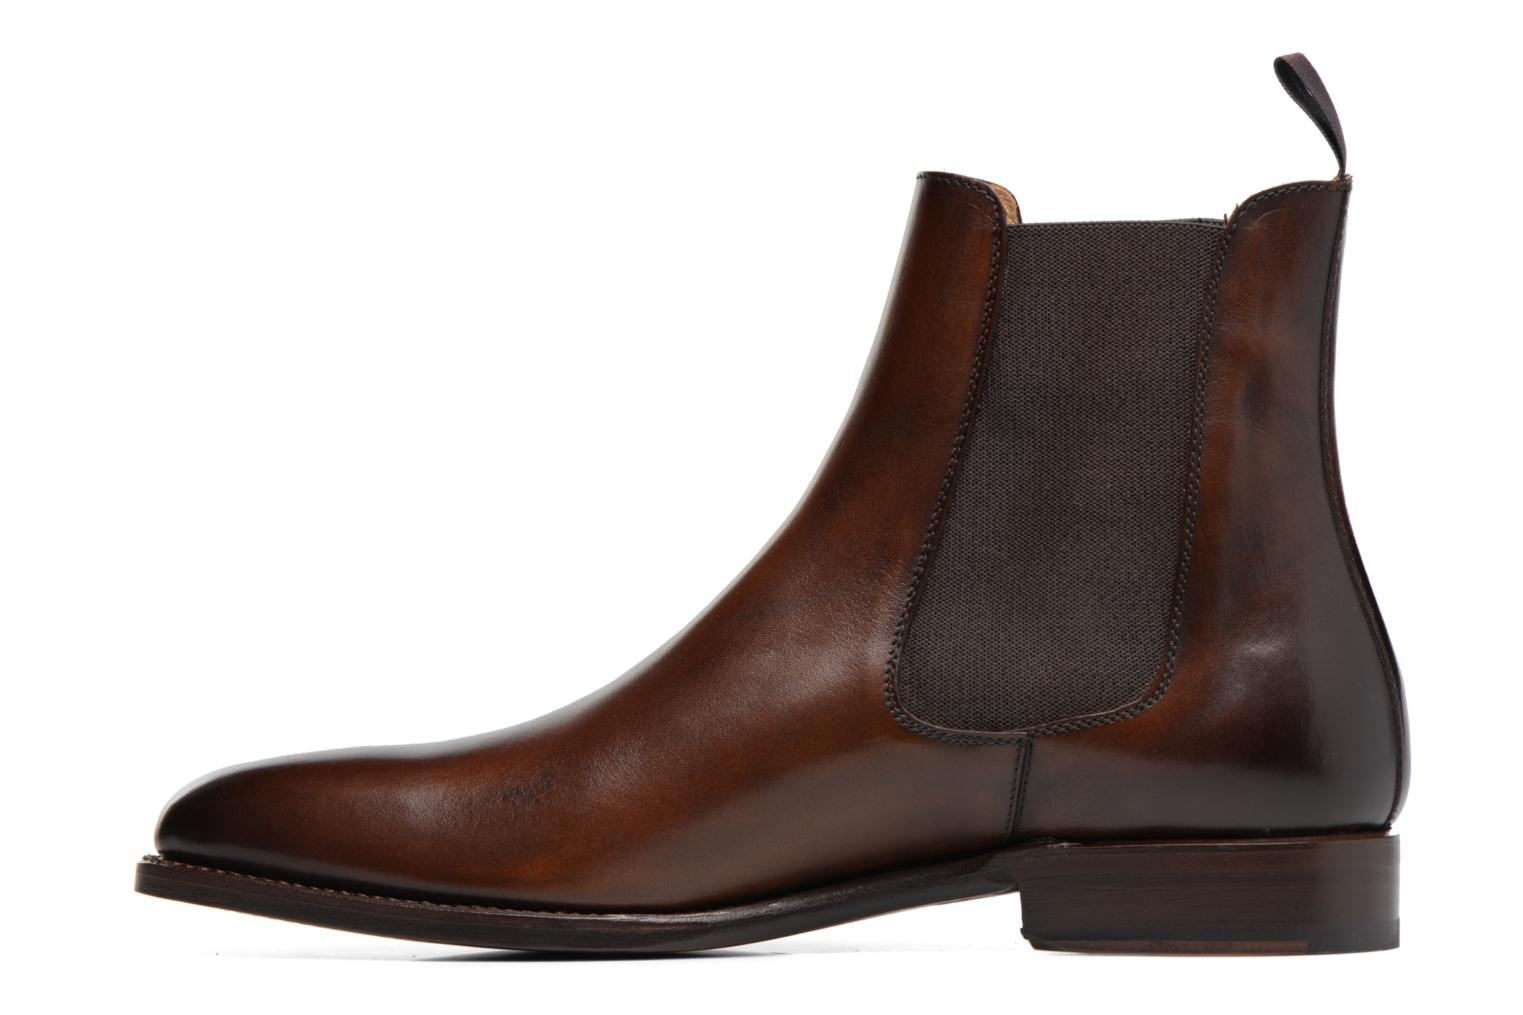 Bottines et boots Marvin&Co Luxe WASPEN - Cousu Goodyear Marron vue face